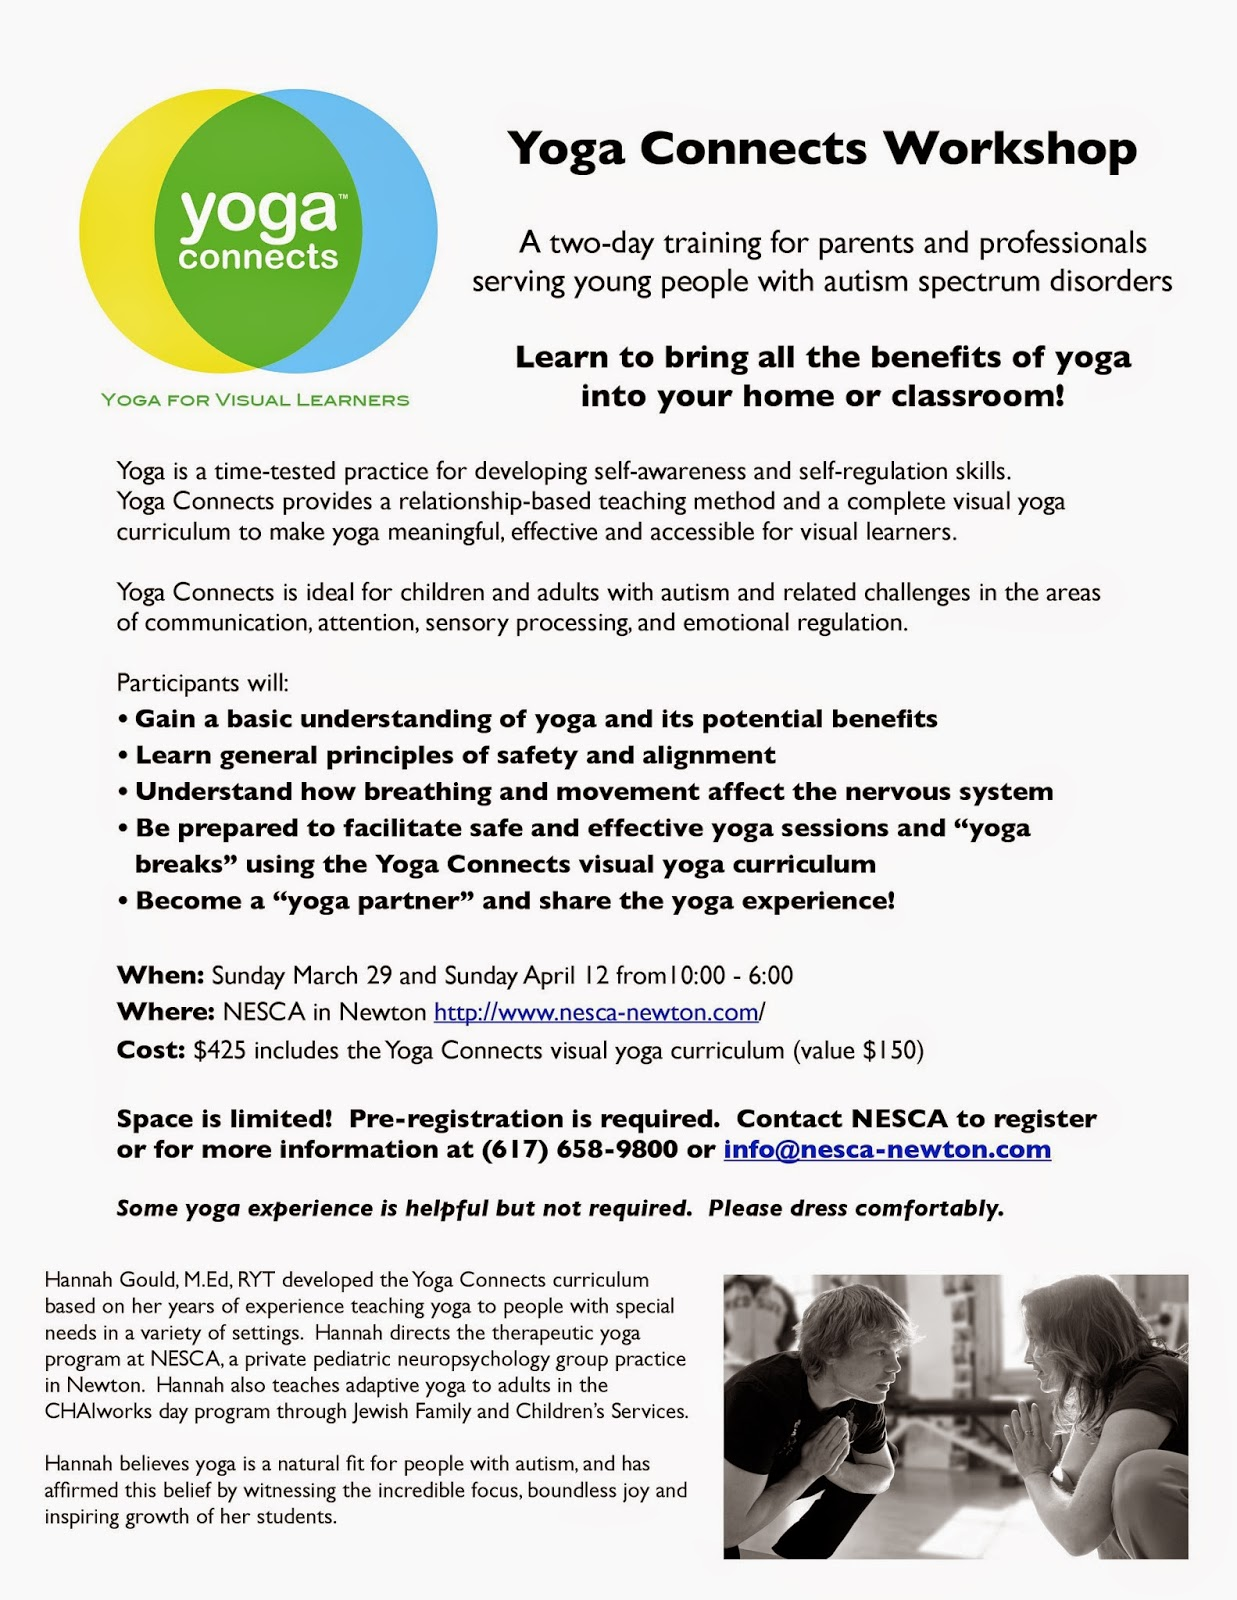 Yoga Connects 2 Day Training With >> Nesca News Notes Yoga Connects 2 Day Training At Nesca Sundays